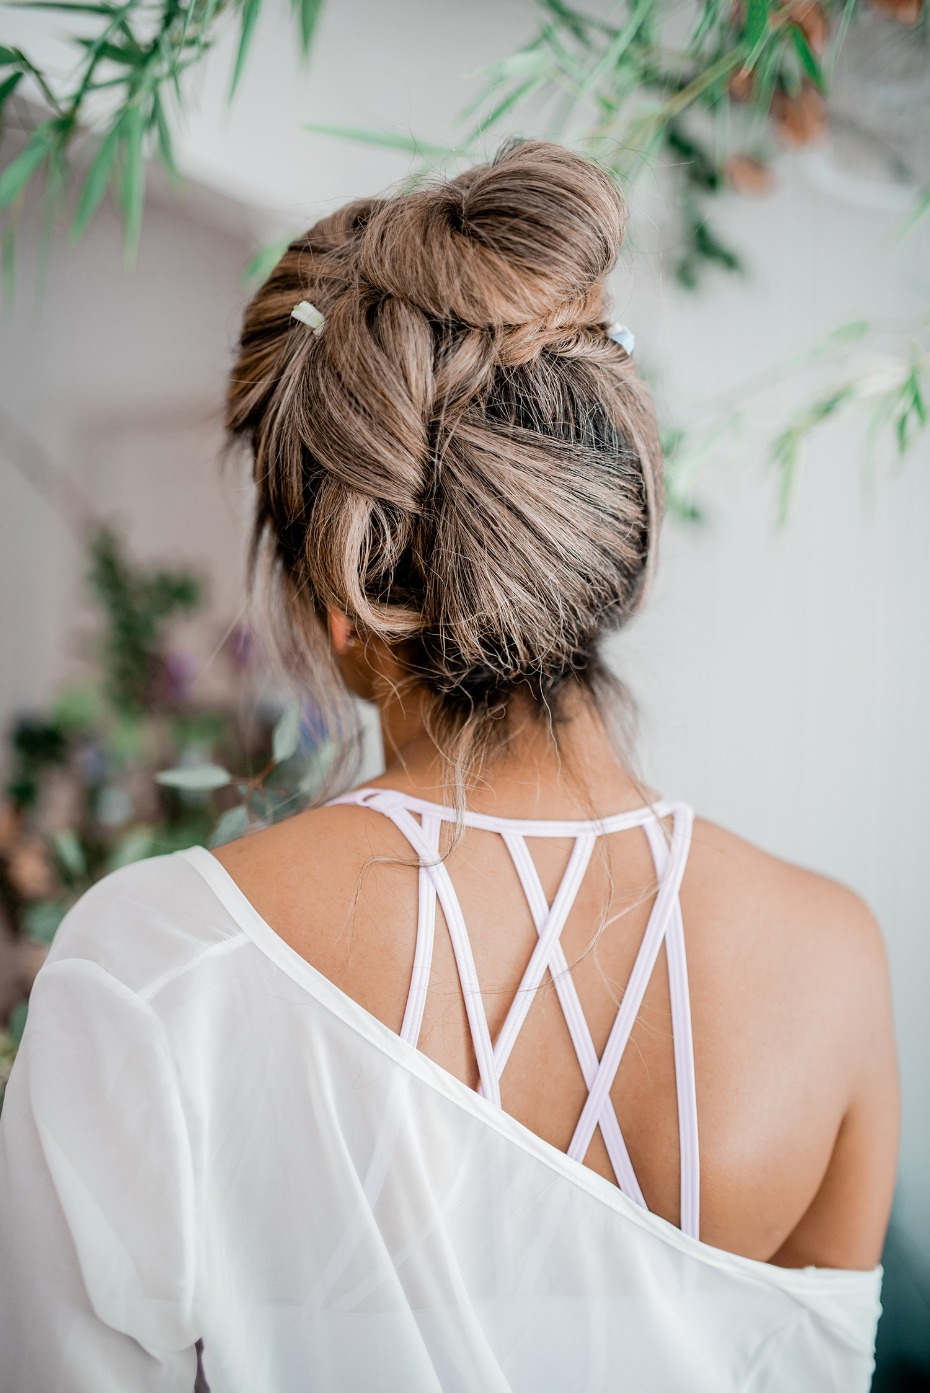 Cute hair updo for the bride